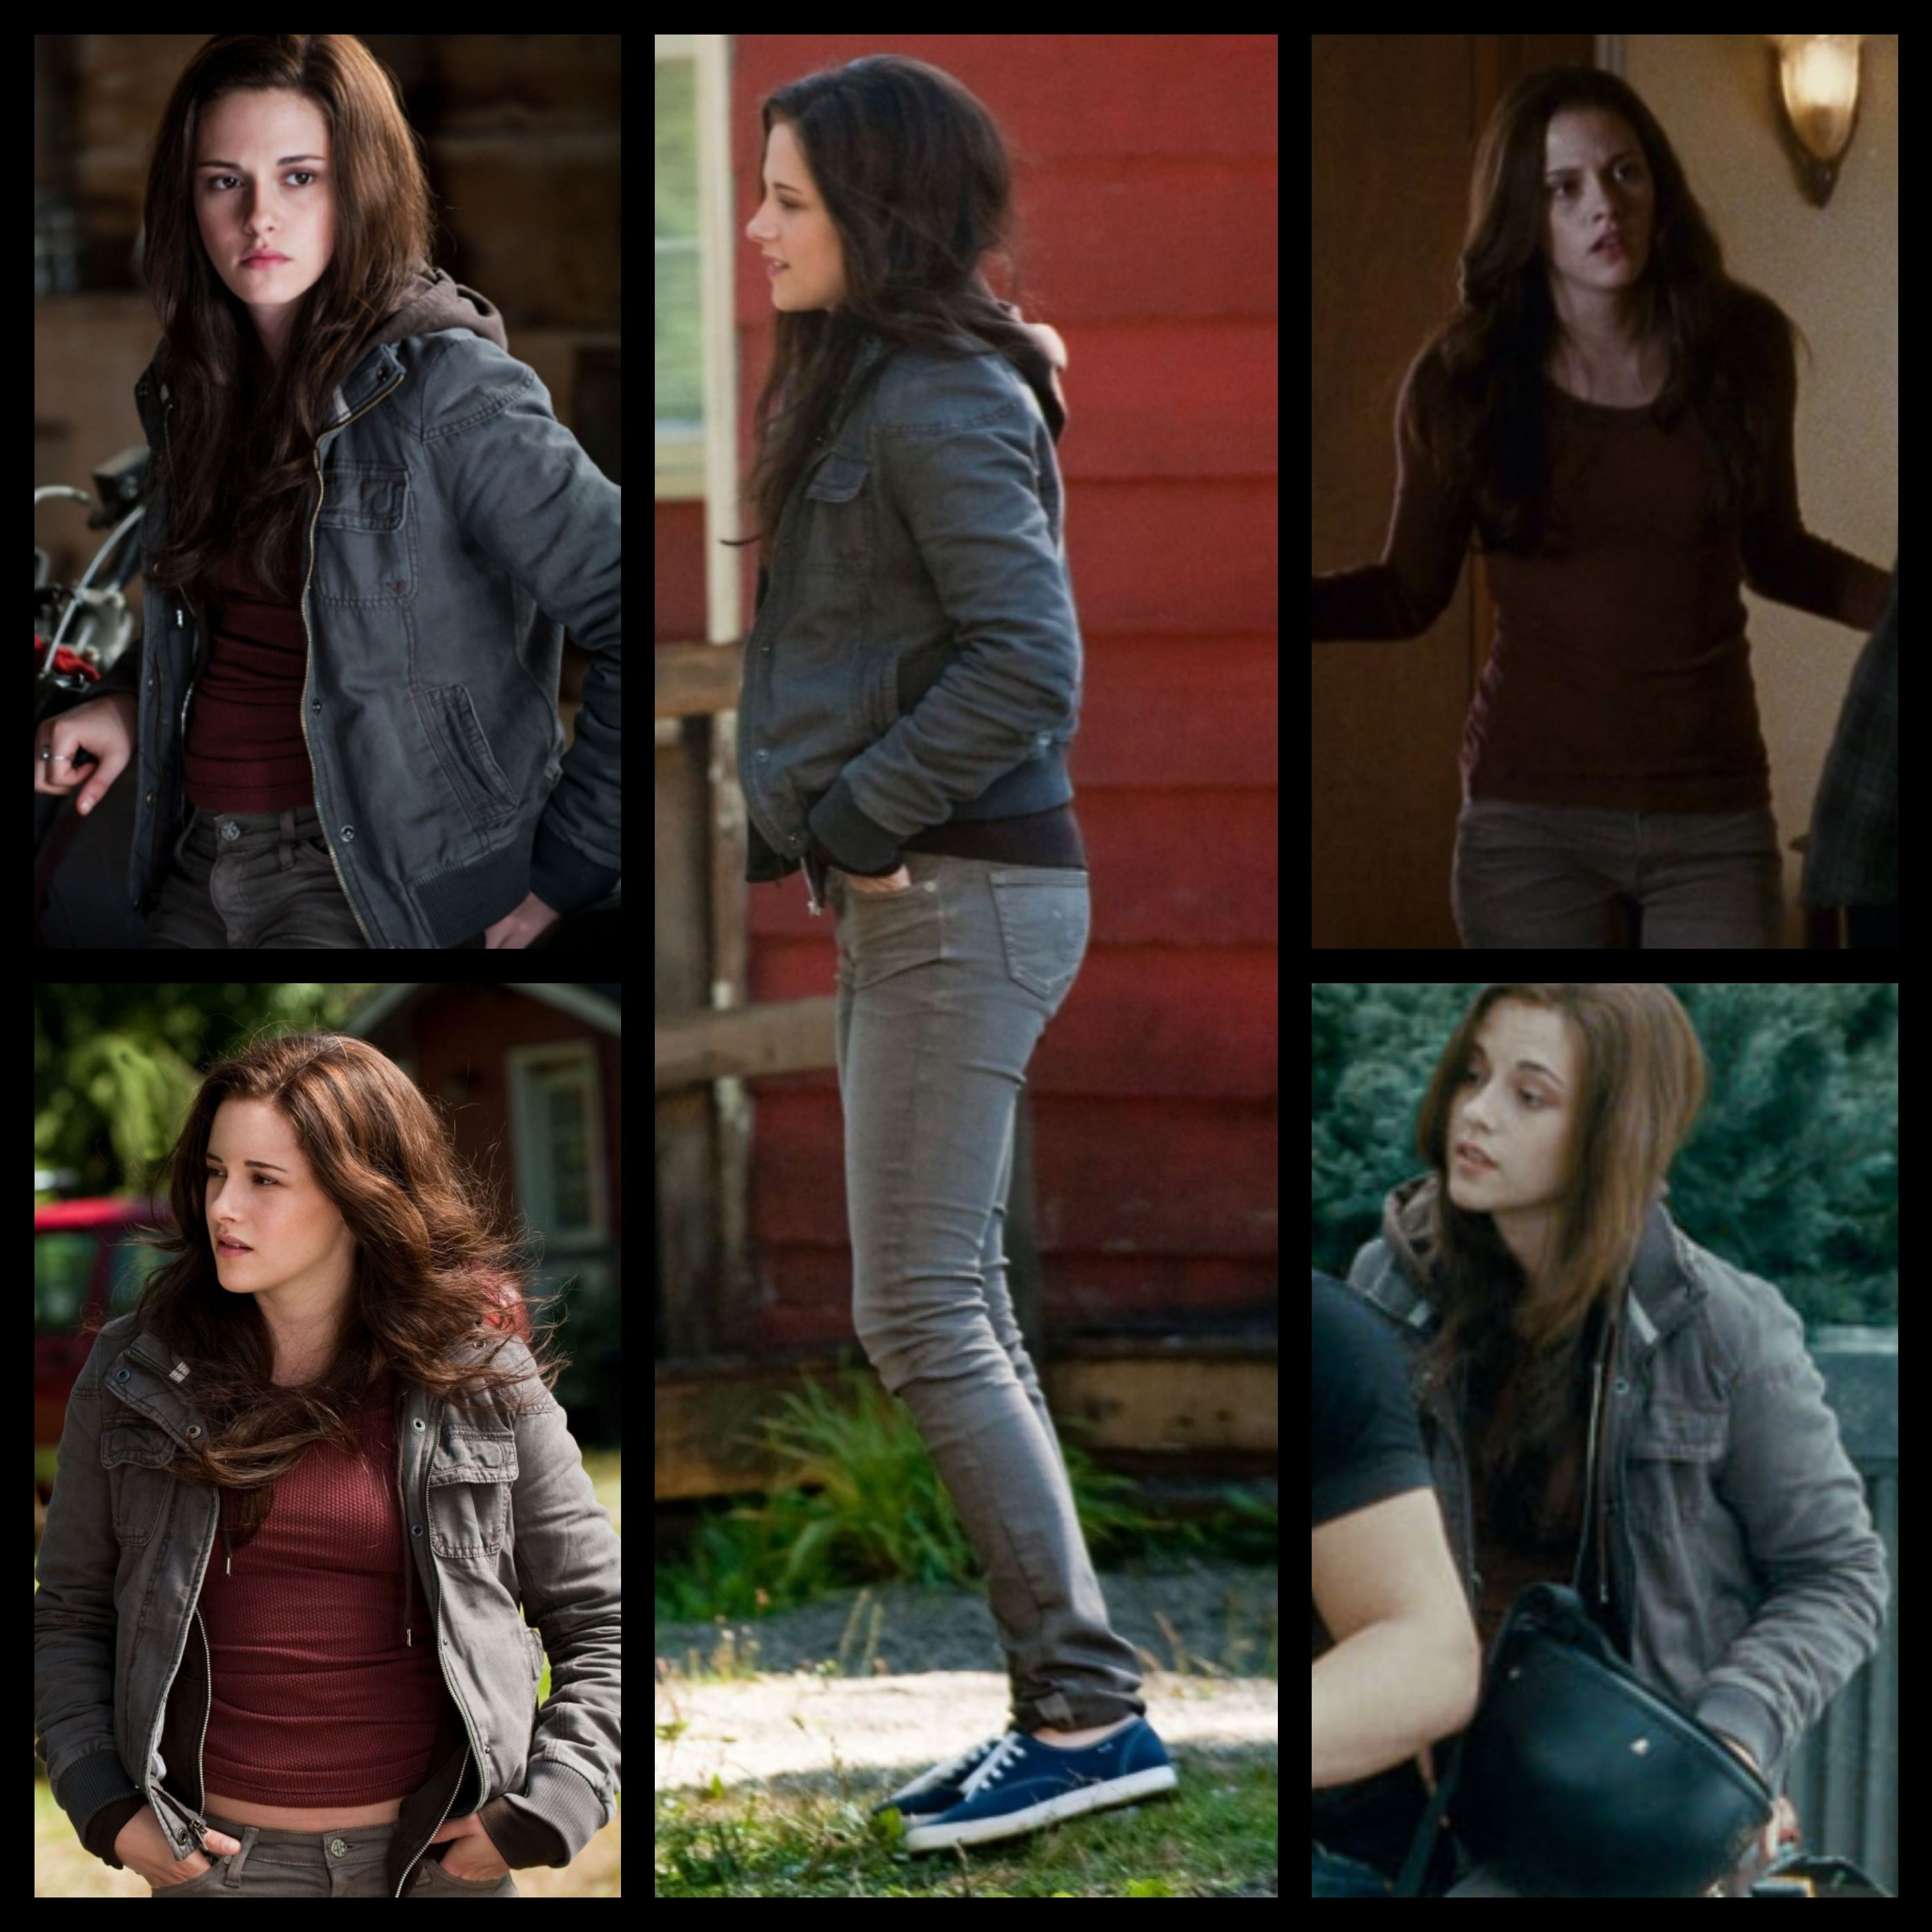 bella swan outfits - Google Search | Fashion Ideas - Fall ...